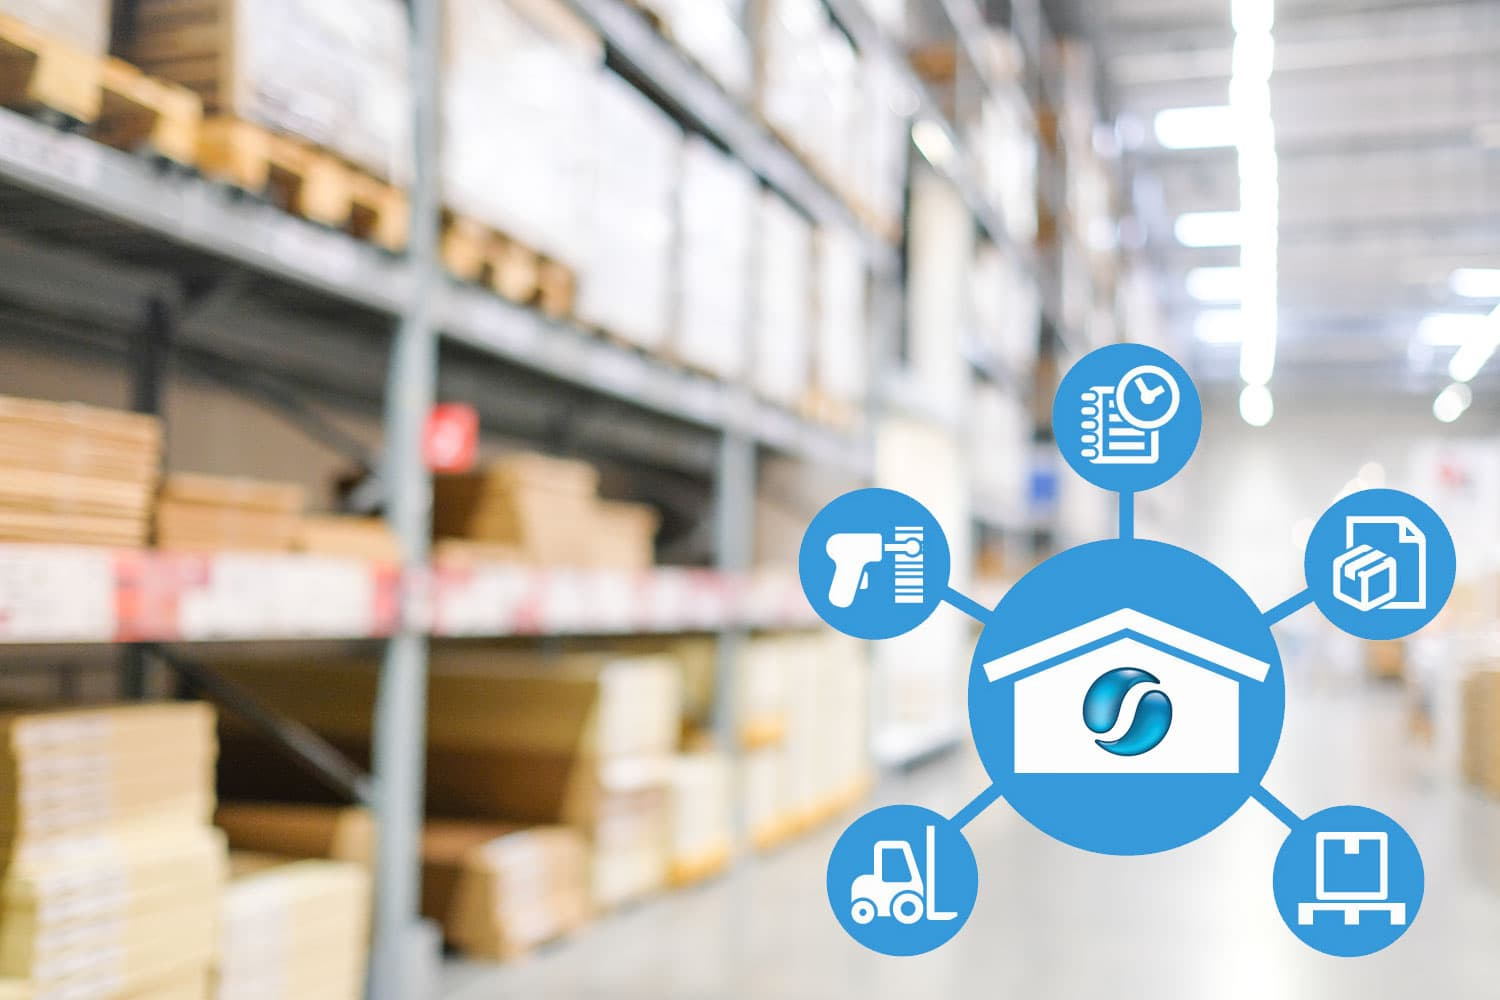 SapphireOne warehouse management application and logistics management suite